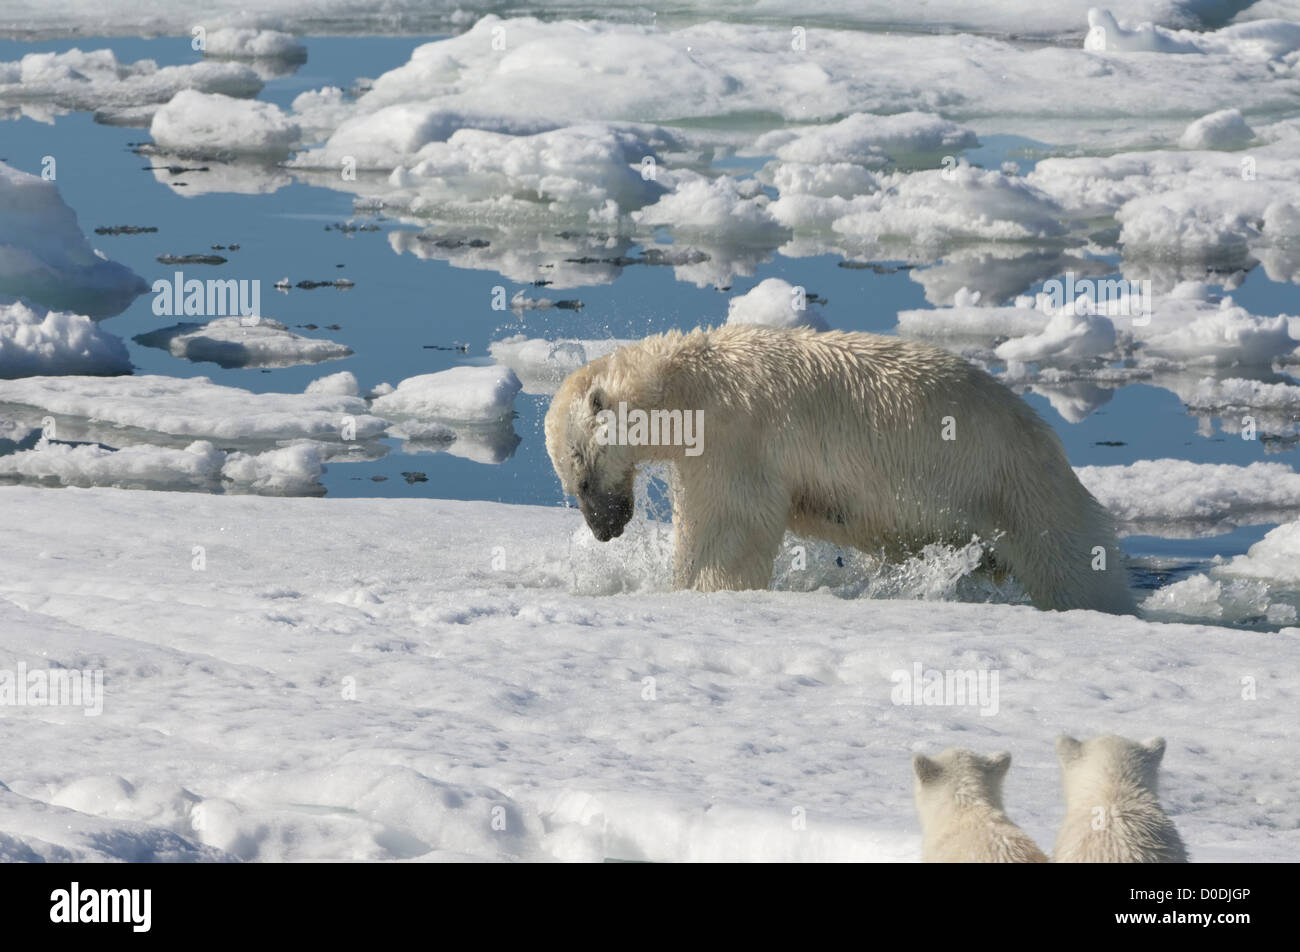 Female Polar bear (Ursus maritimus) hunting a ringed seal, Svalbard Archipelago, Barents Sea, Norway - Stock Image